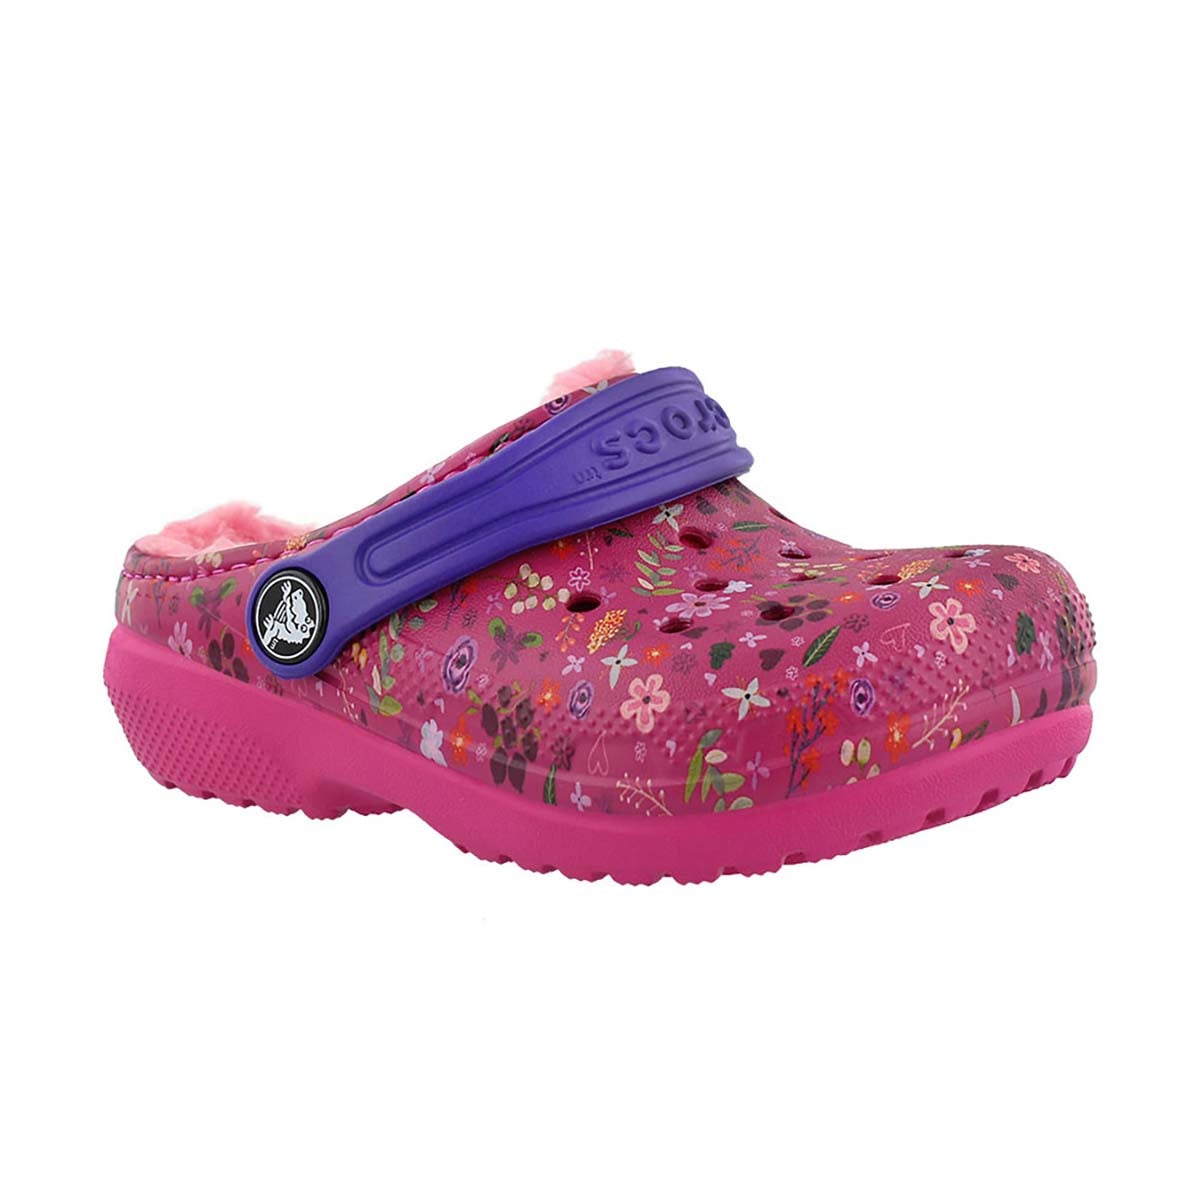 Girls' CLASSIC LINED GRAPHIC candy pink clogs